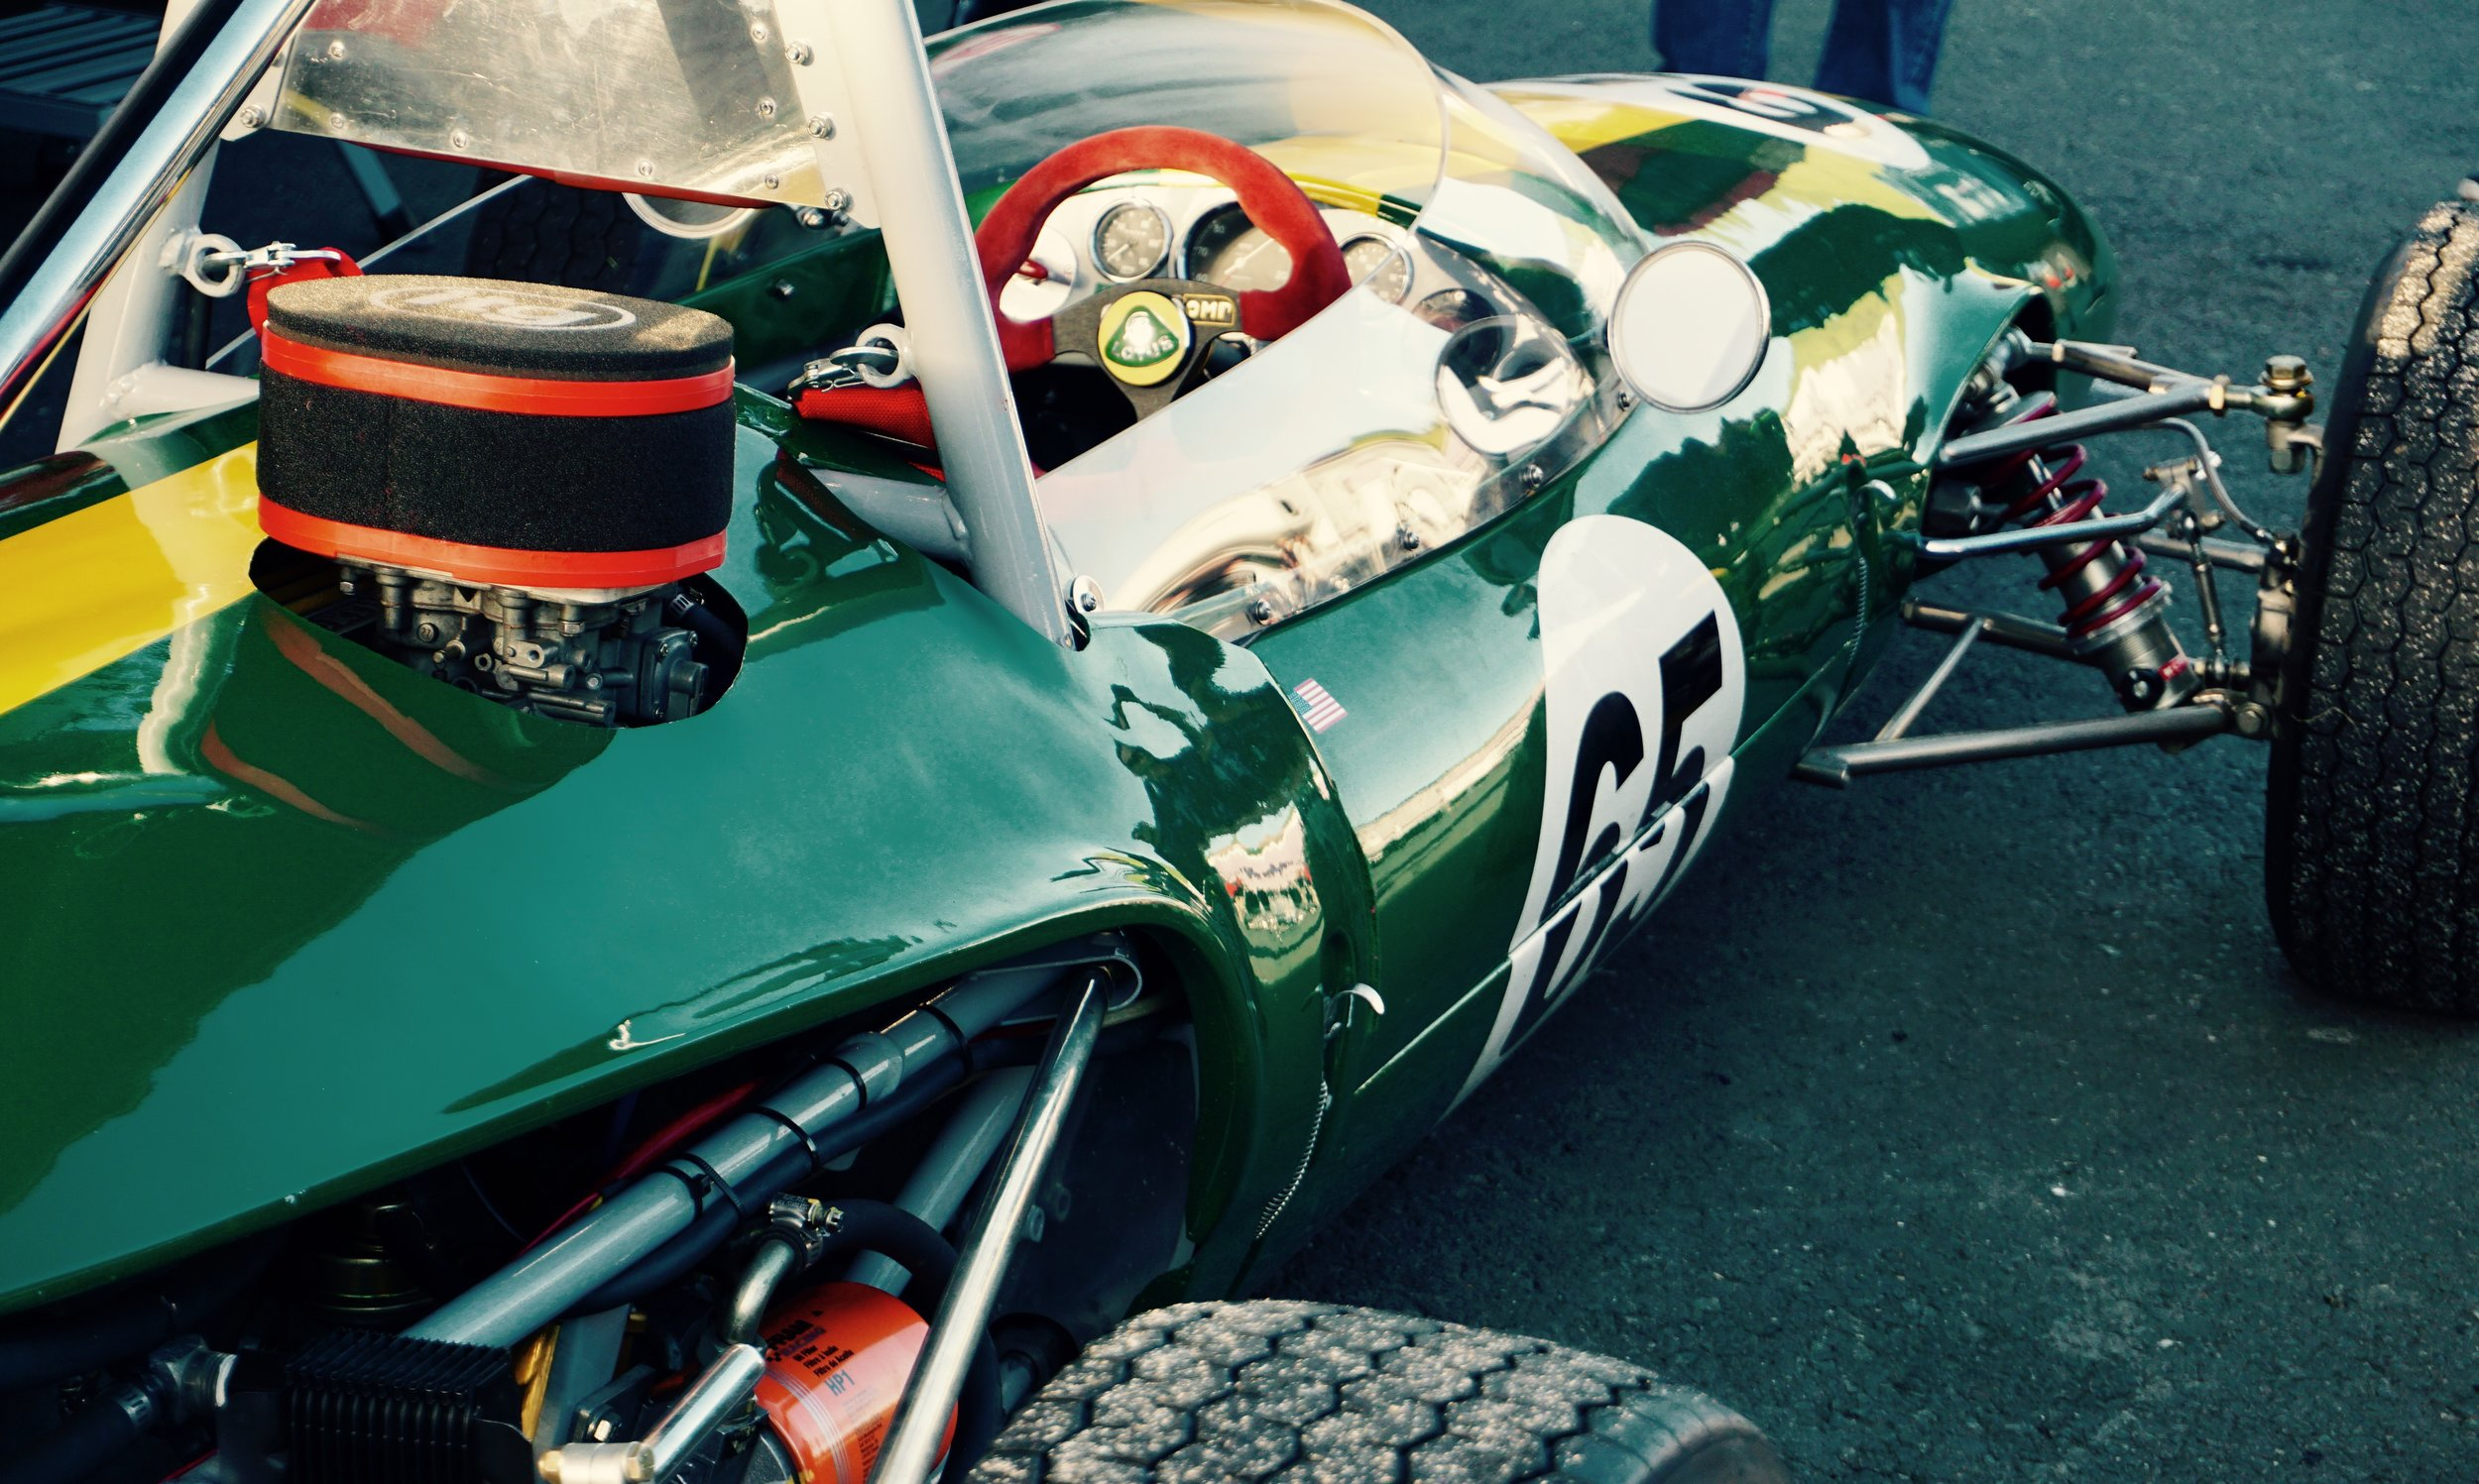 Geir Ramleth's Lotus 51